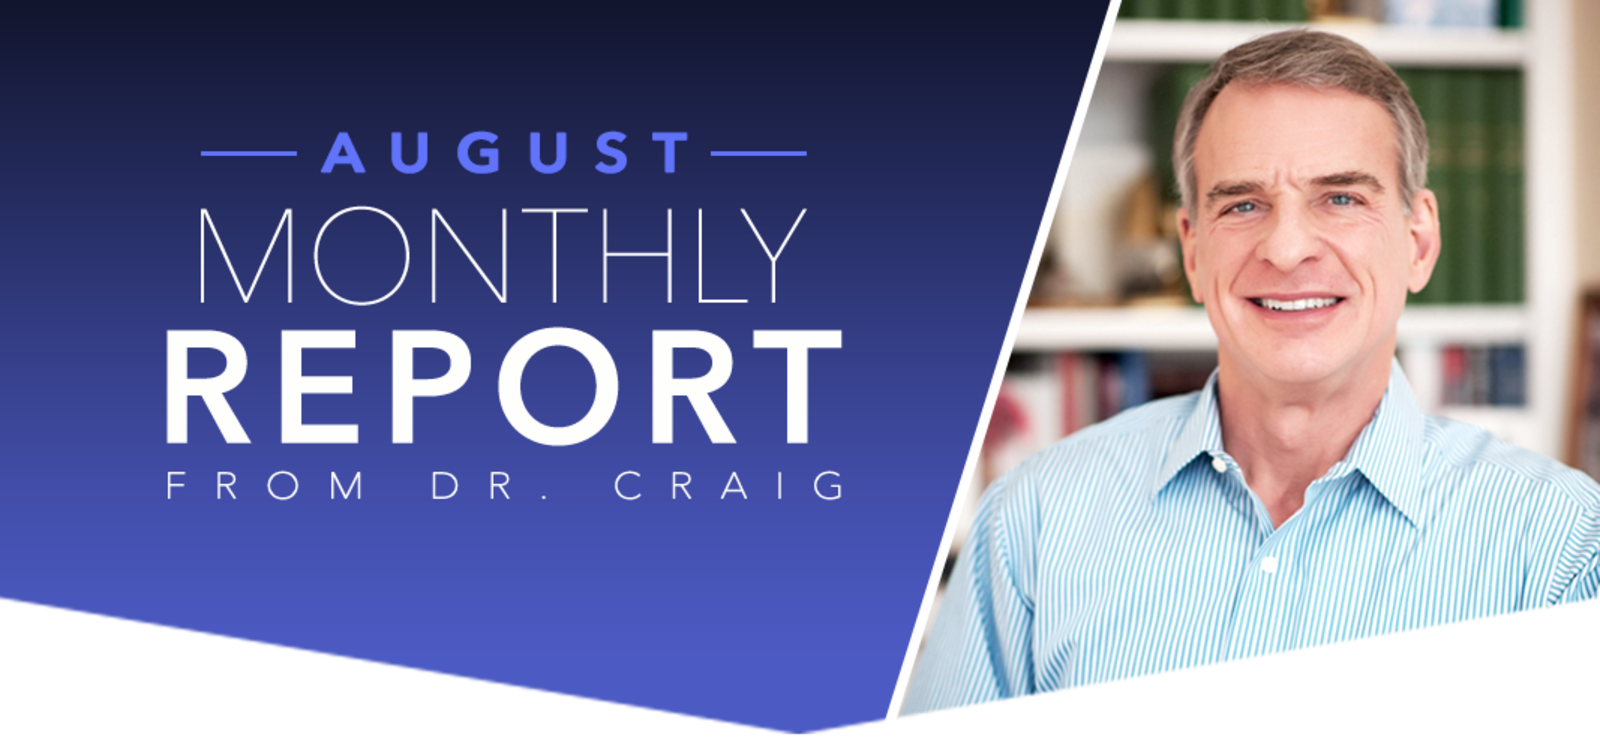 AUGUST MONTHLY REPORT FROM DR. CRAIG